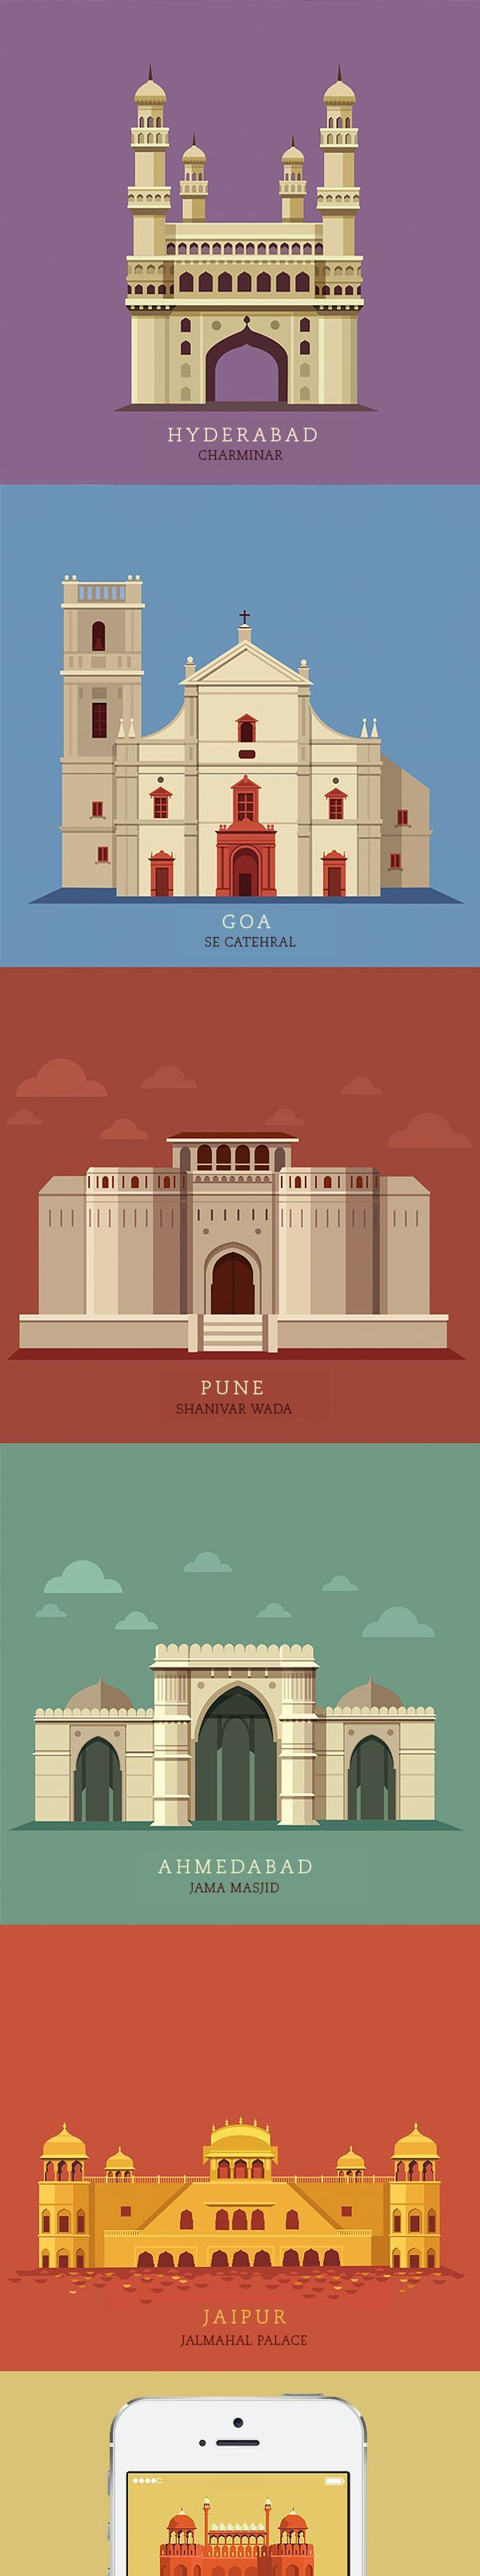 City Guide - Times Group by ranganath krishnamani, via Behance